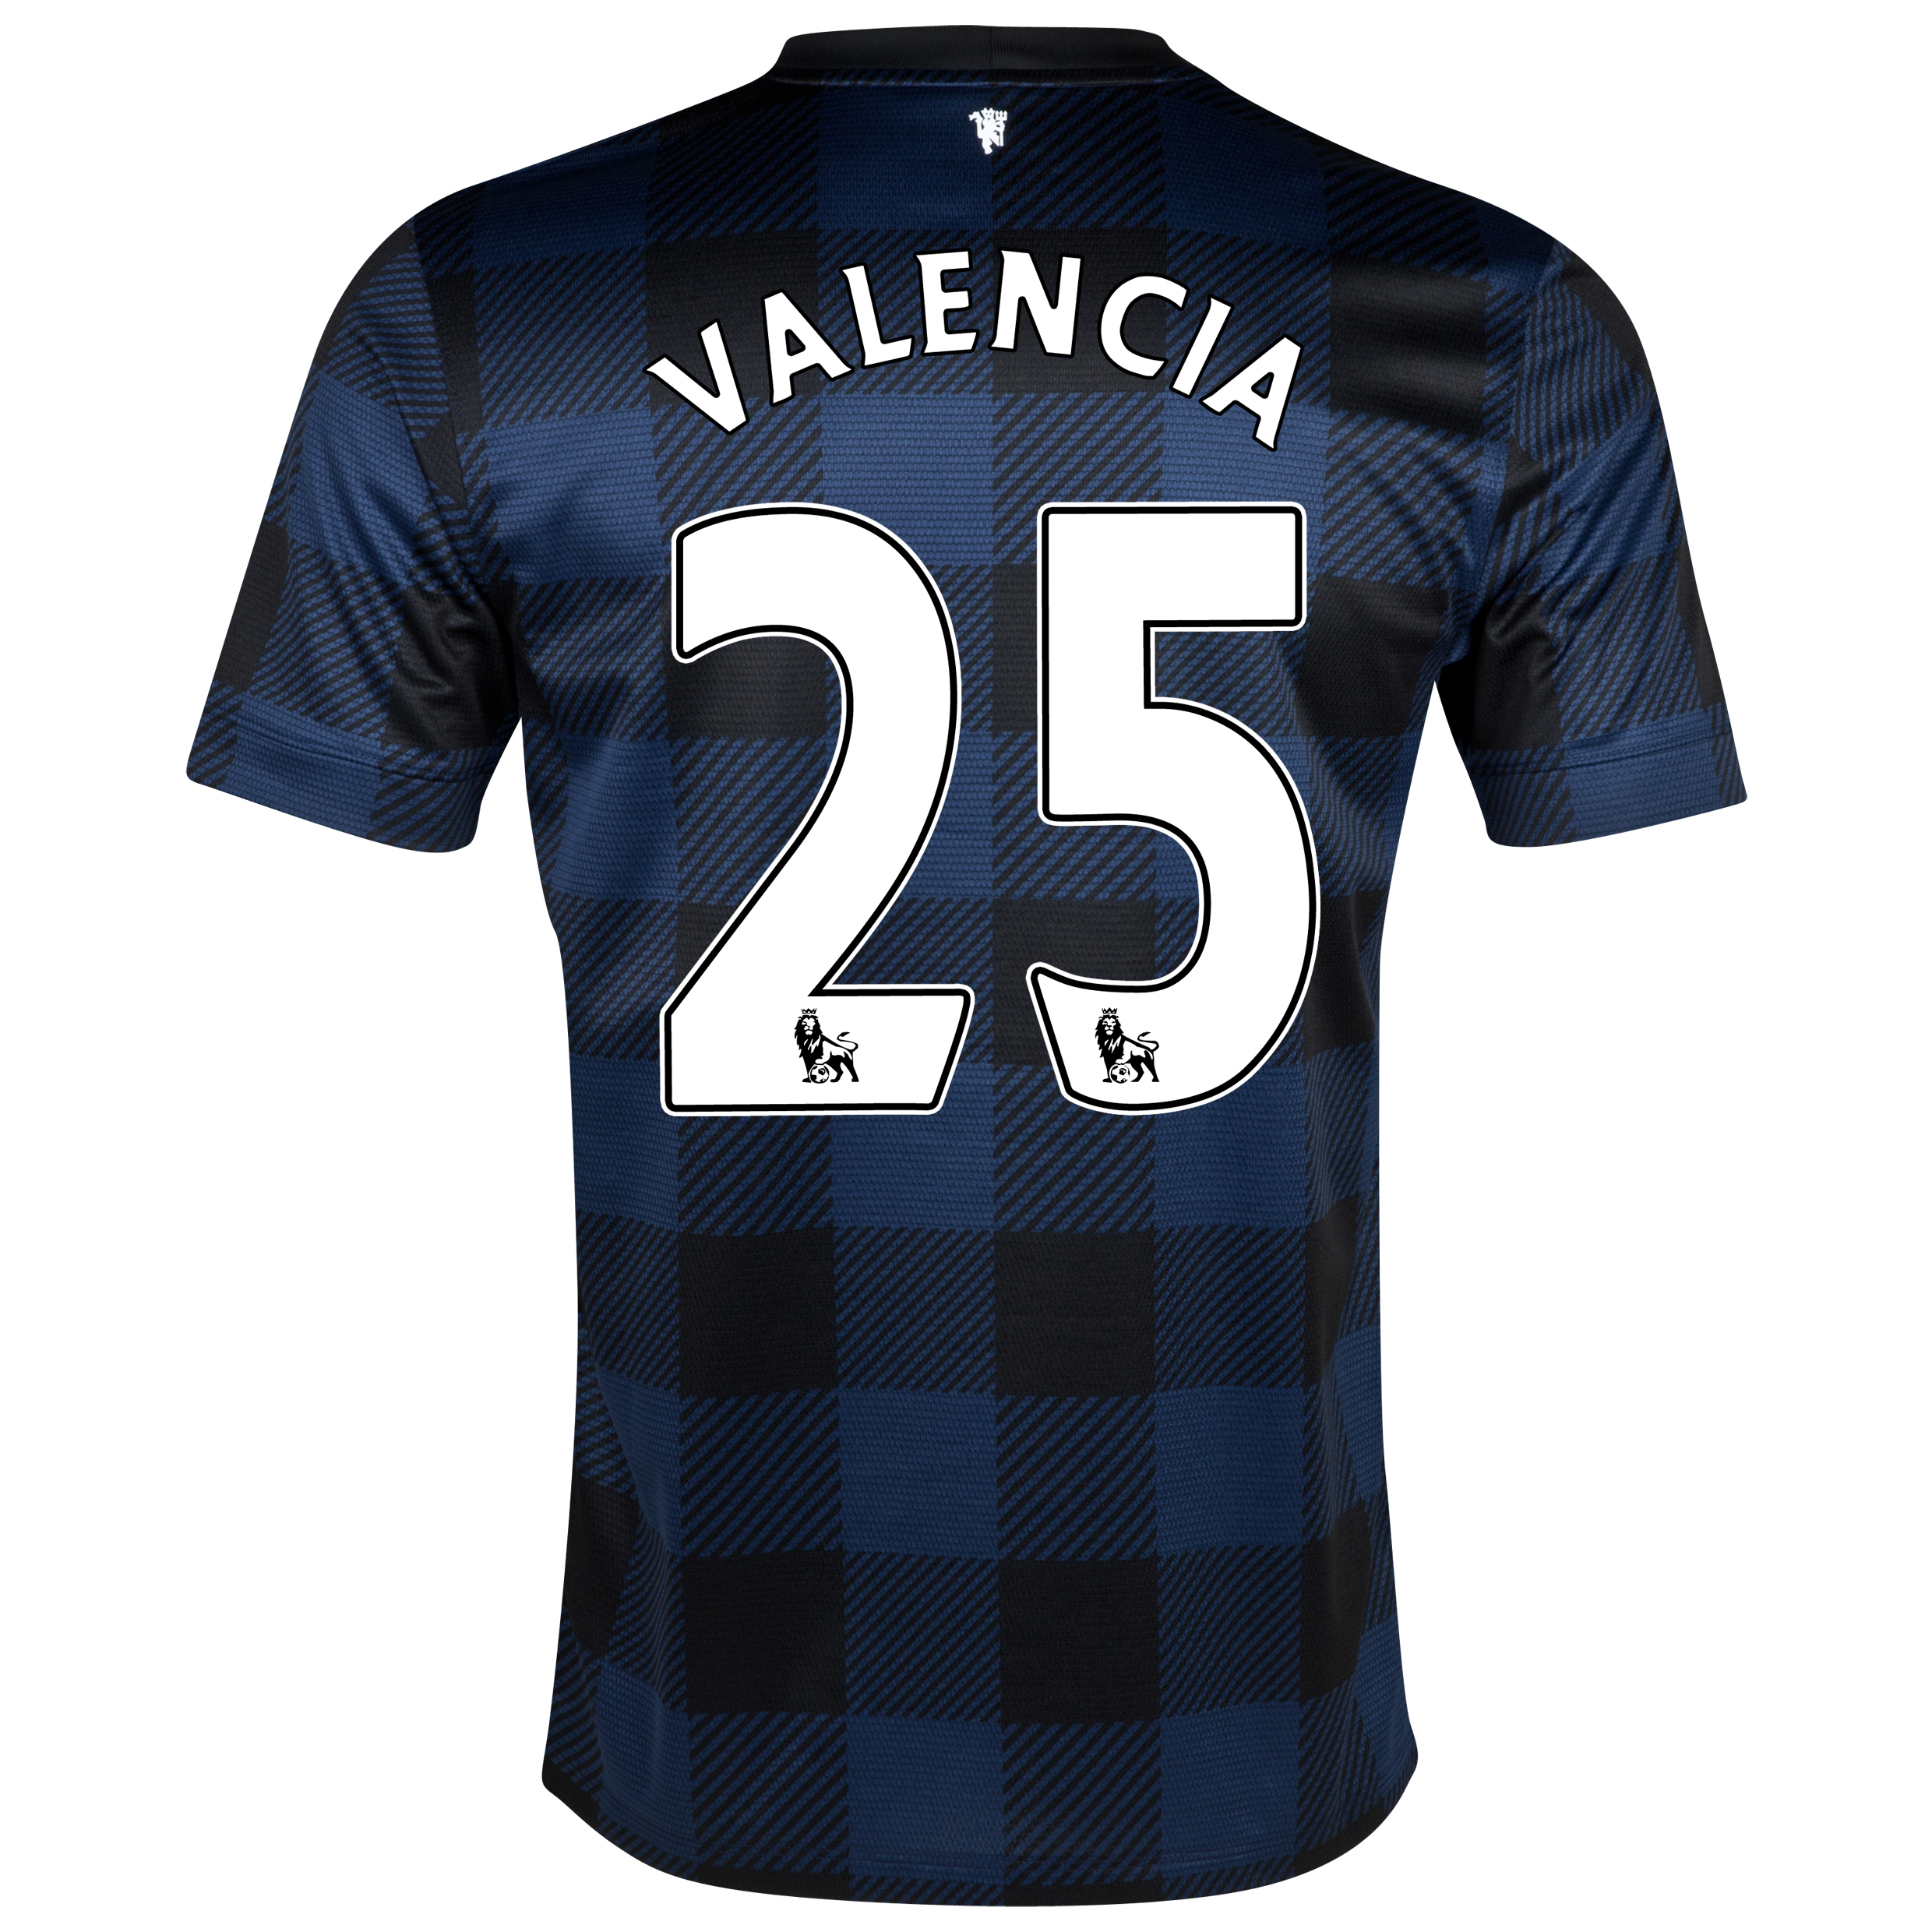 Manchester United Away Shirt 2013/14 with Valencia 25 printing